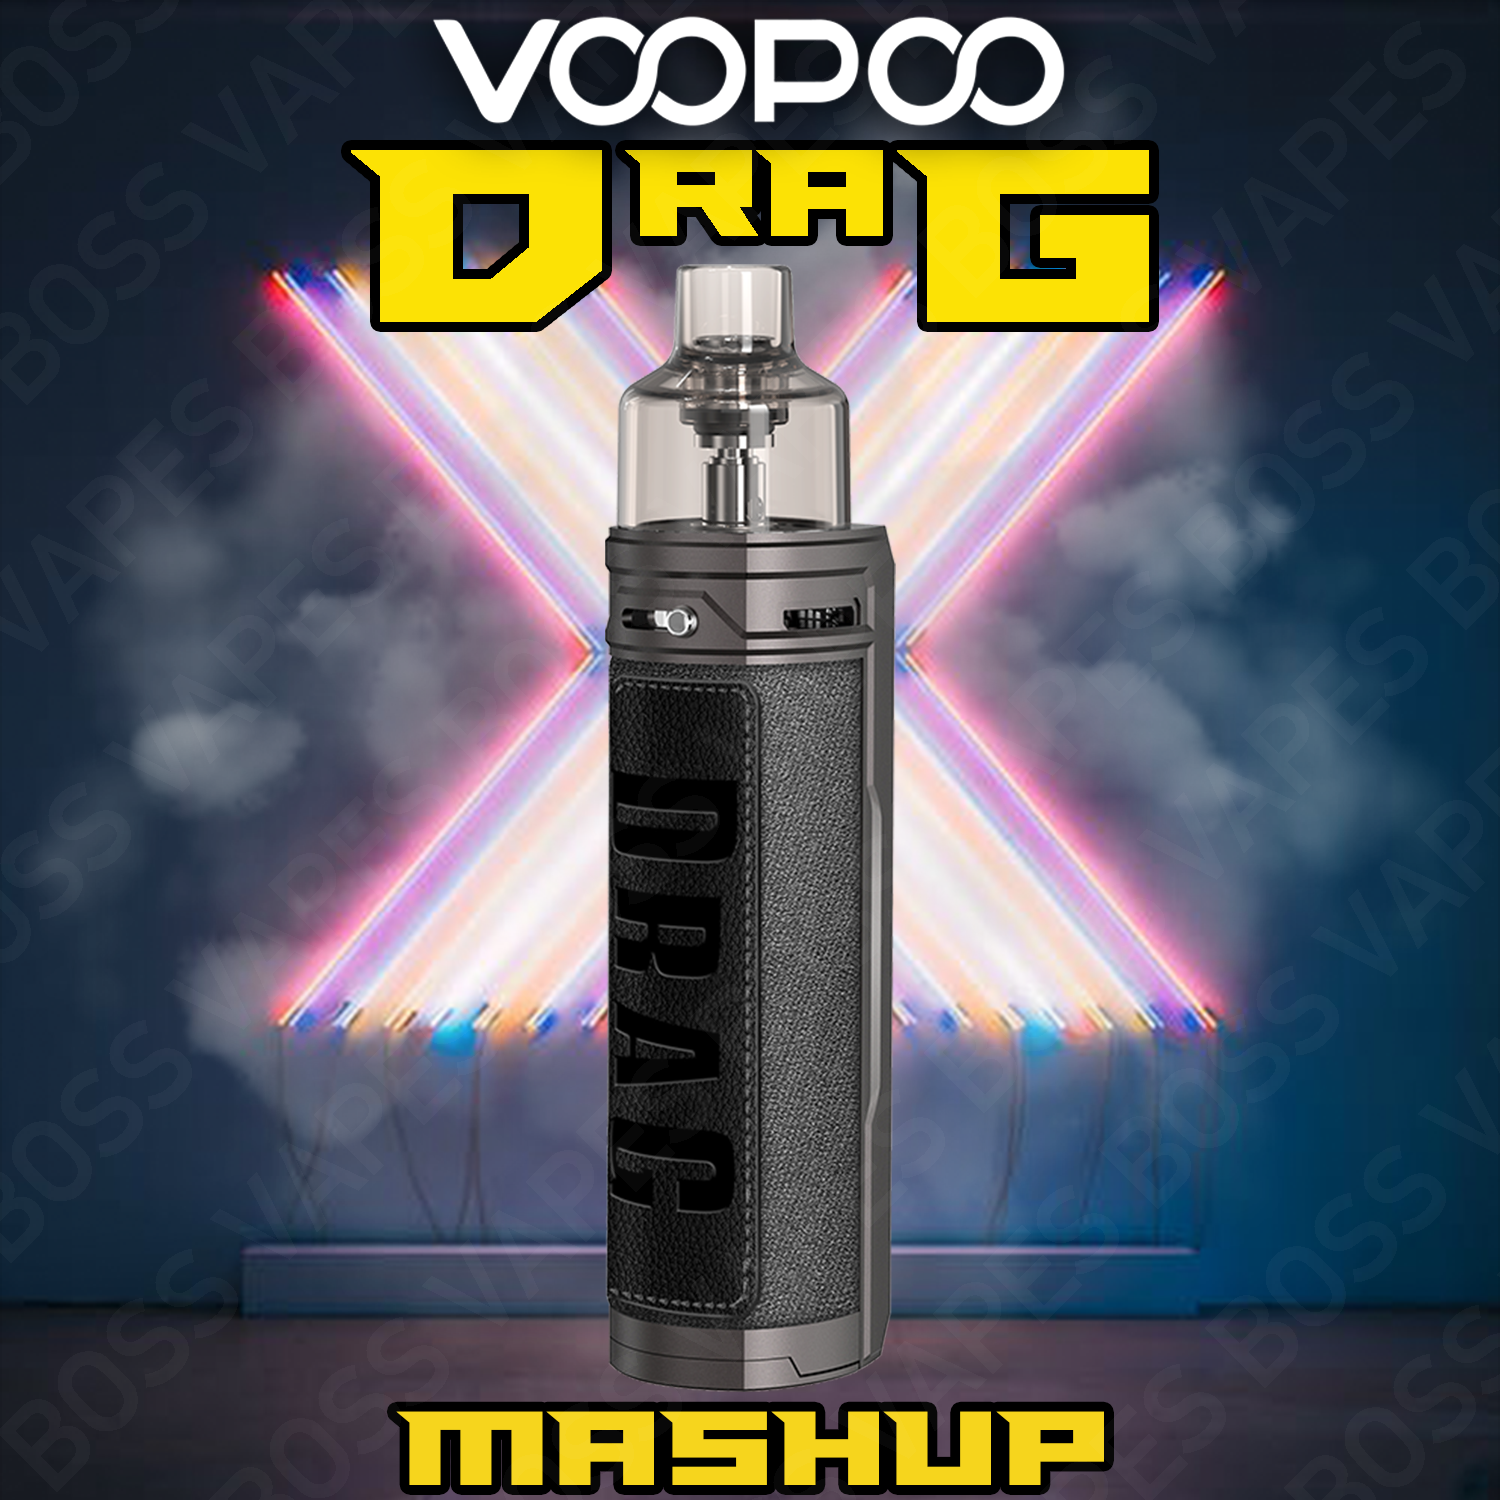 VOOPOO DRAG X 80W POD KIT (BC Compliant) - Boss Vapes